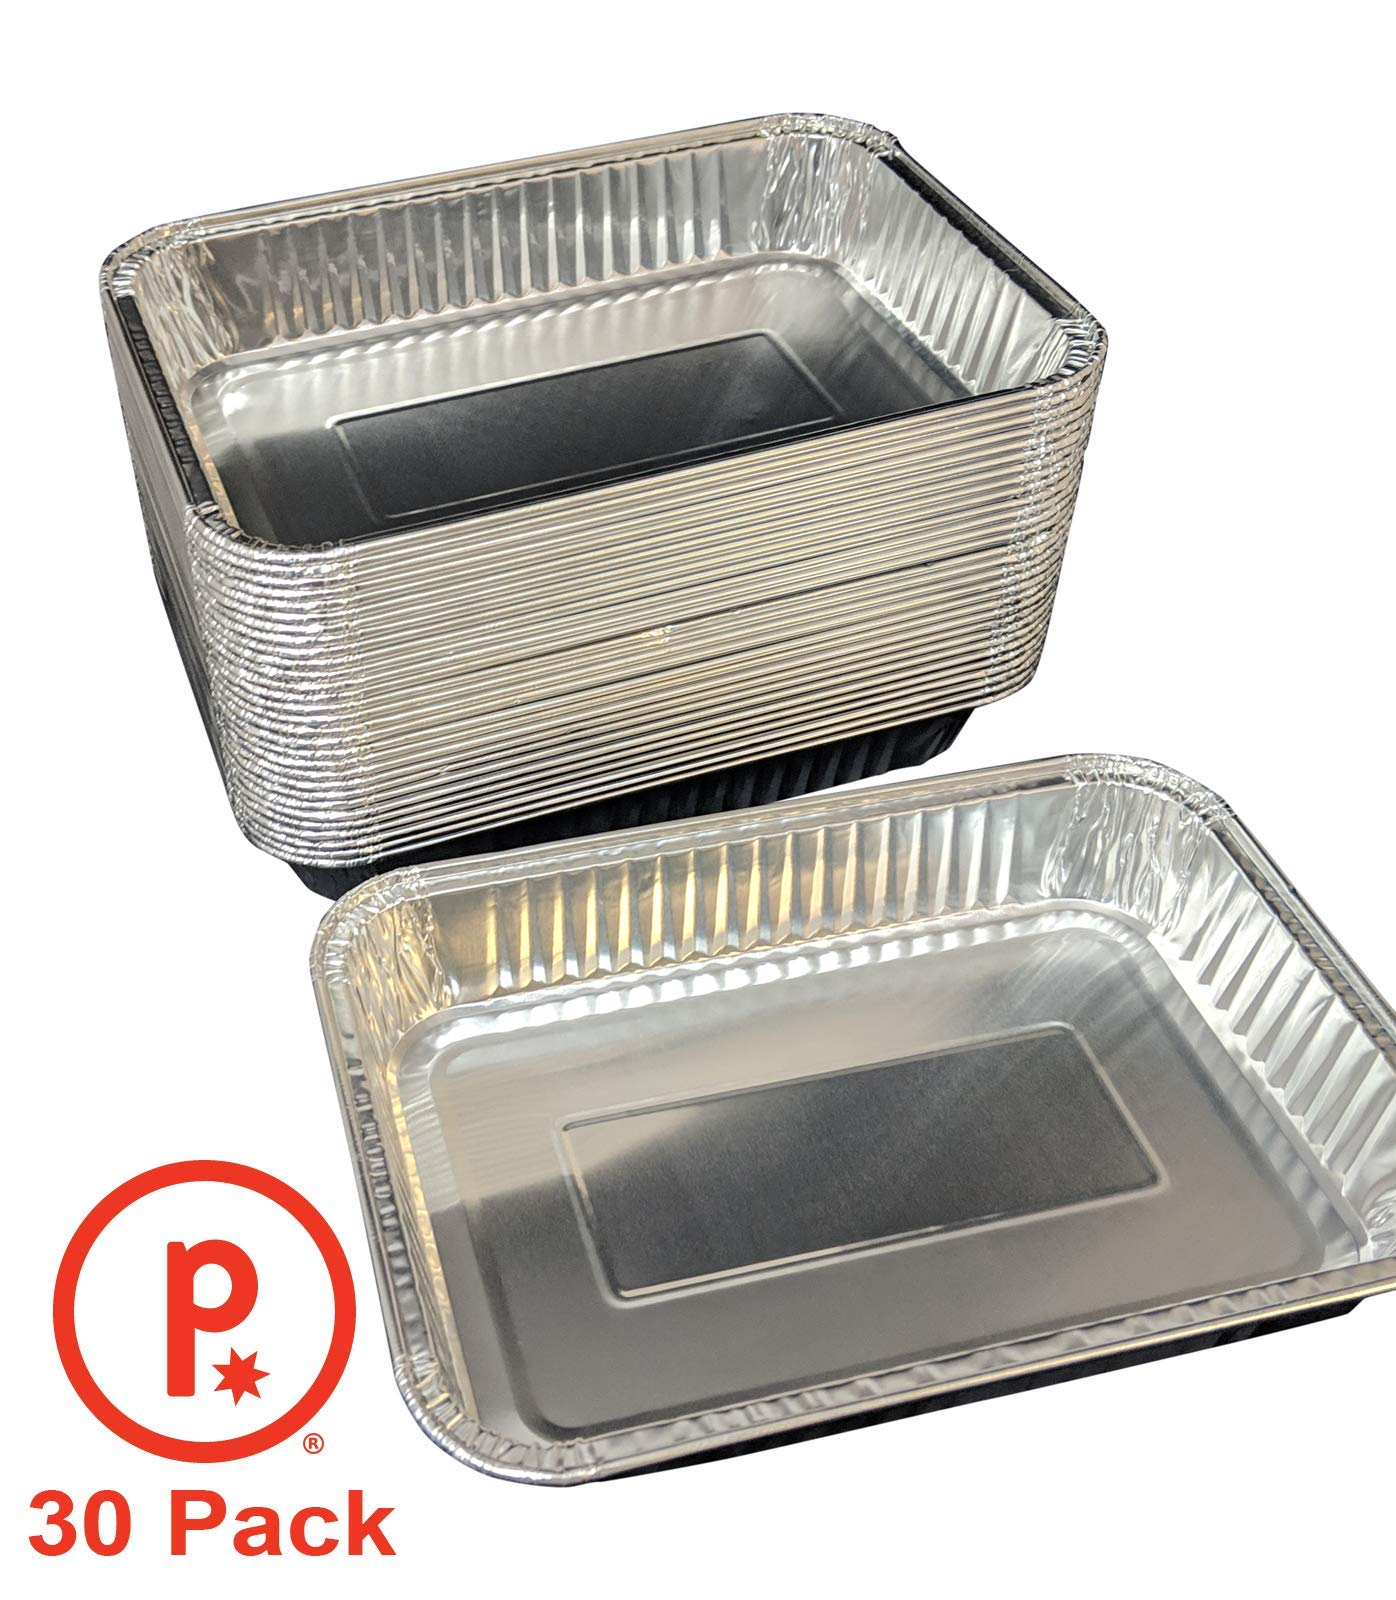 pinkada Aluminum Half Size Deep Foil Pan 9 x 13 Safe for use in Freezer, Oven, and steam Table (30)